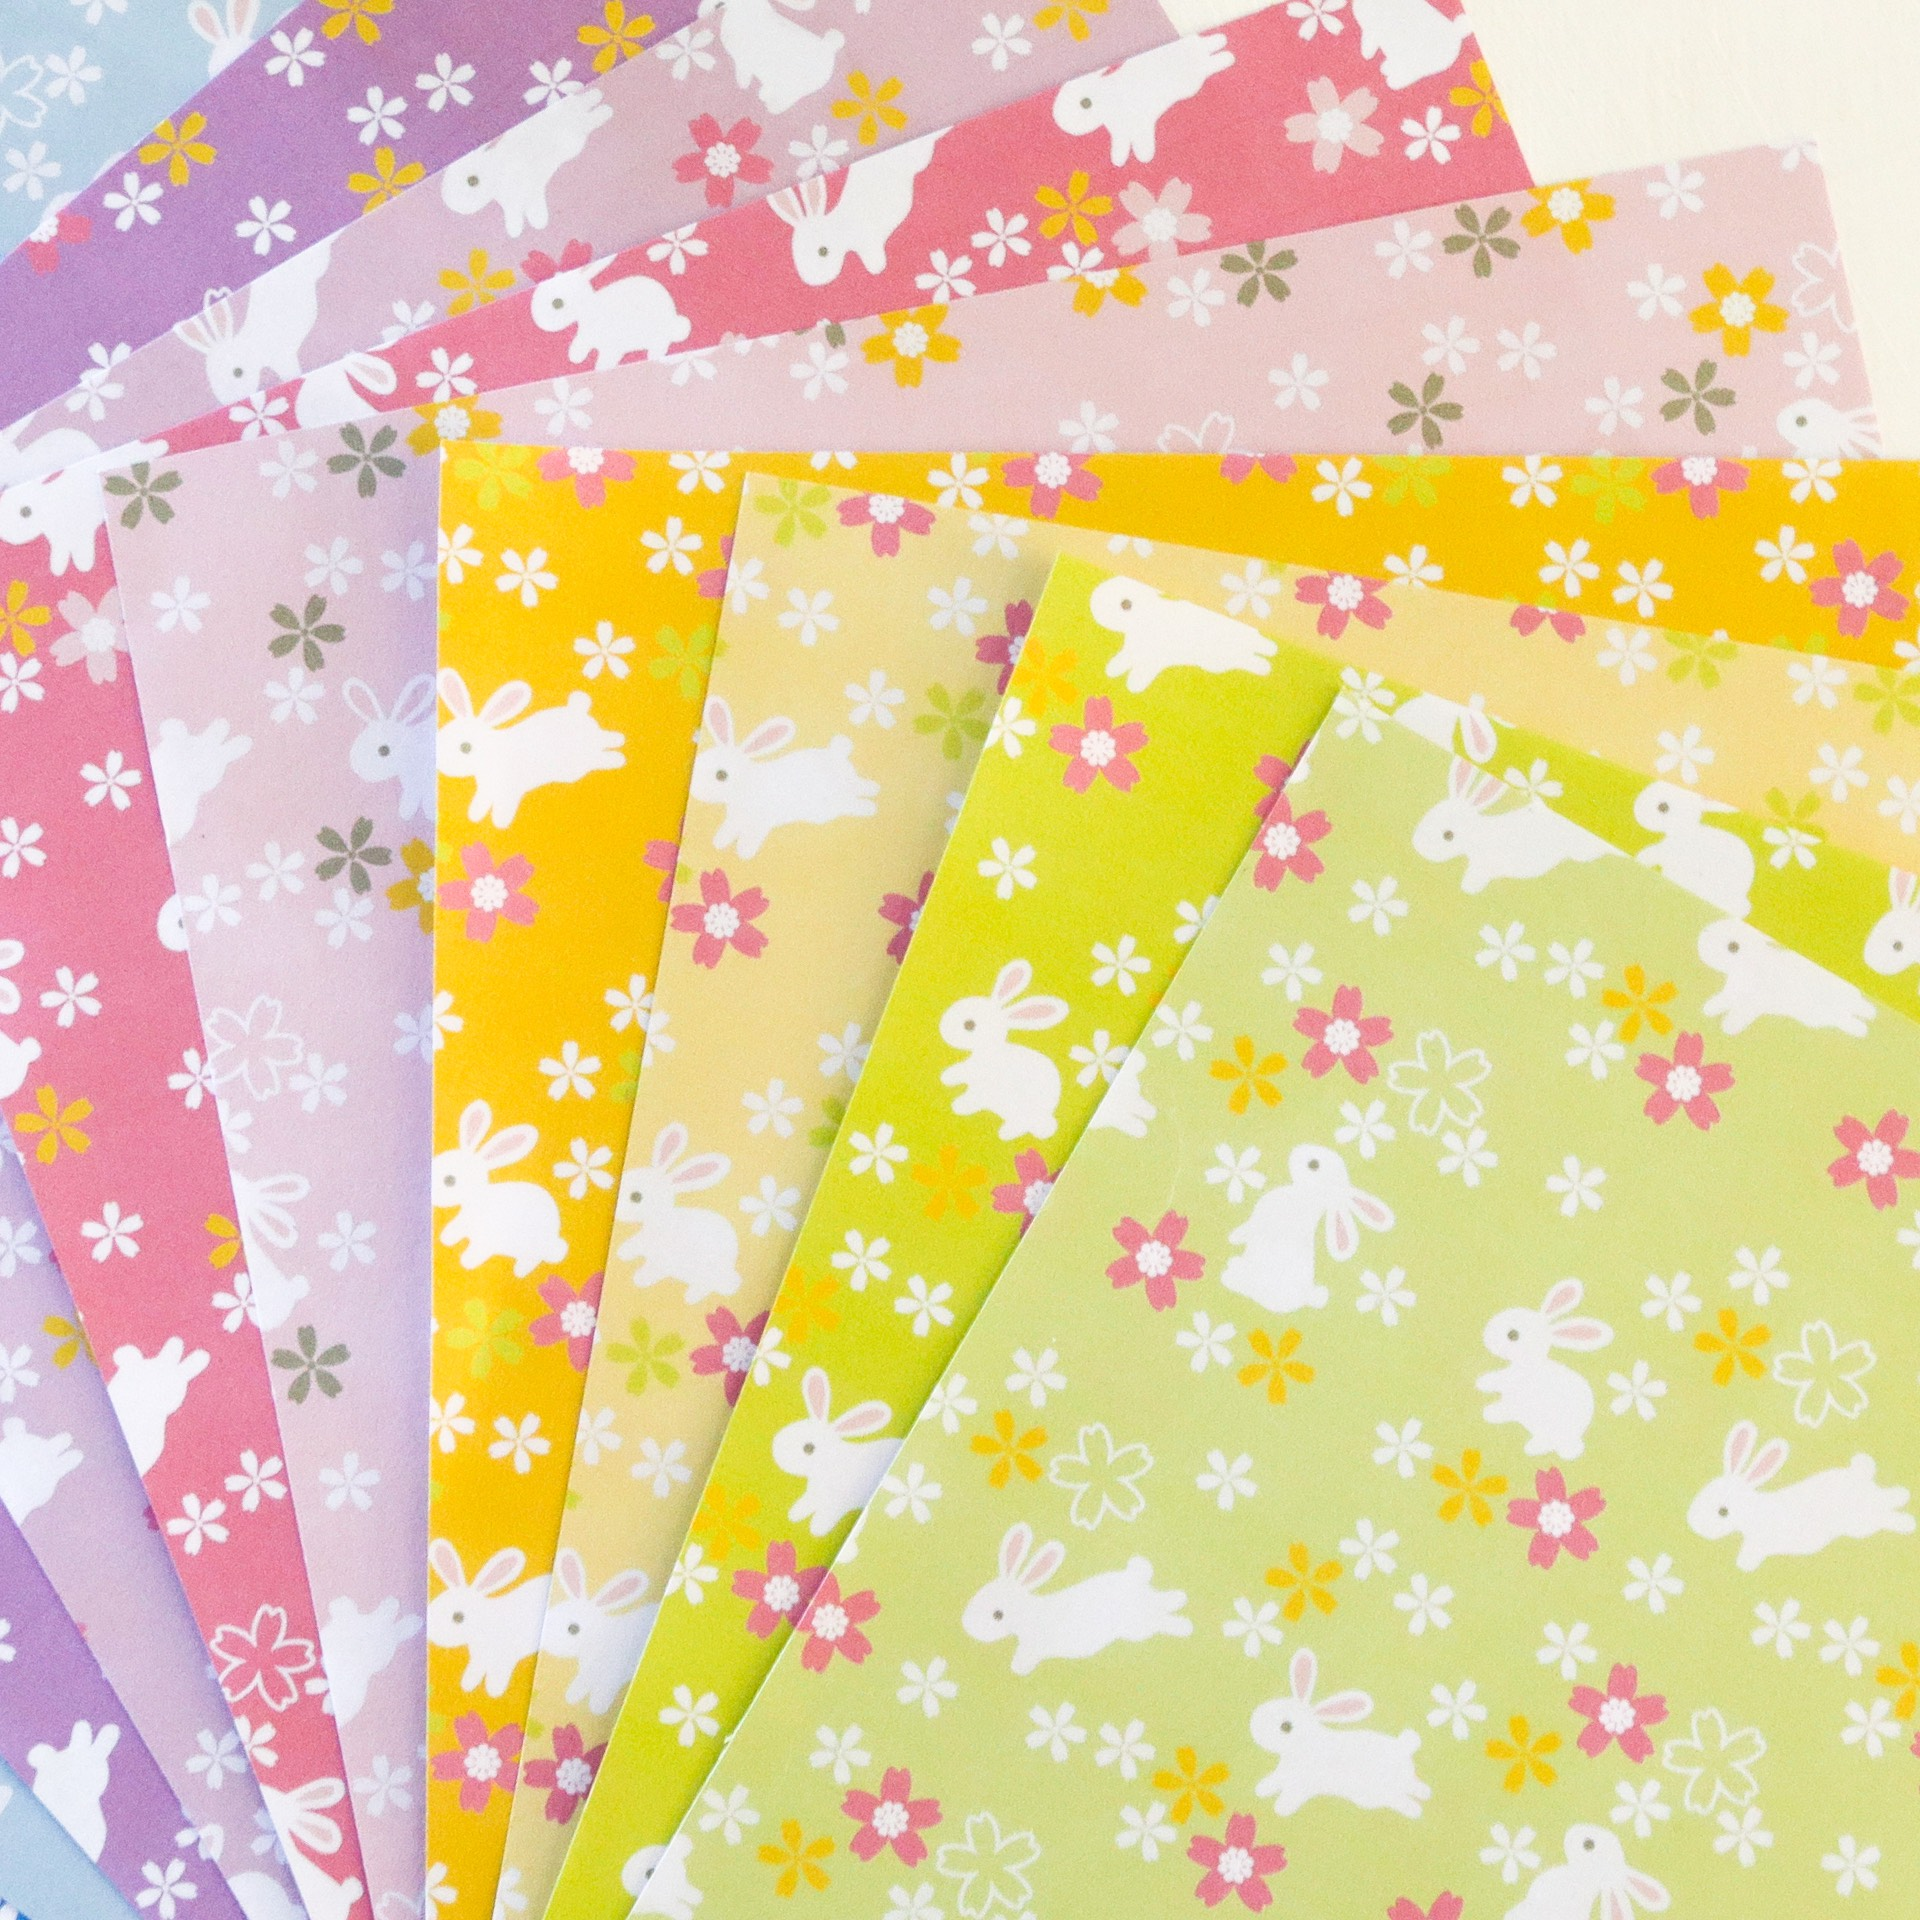 This is a photo of Transformative Origami Paper Printable